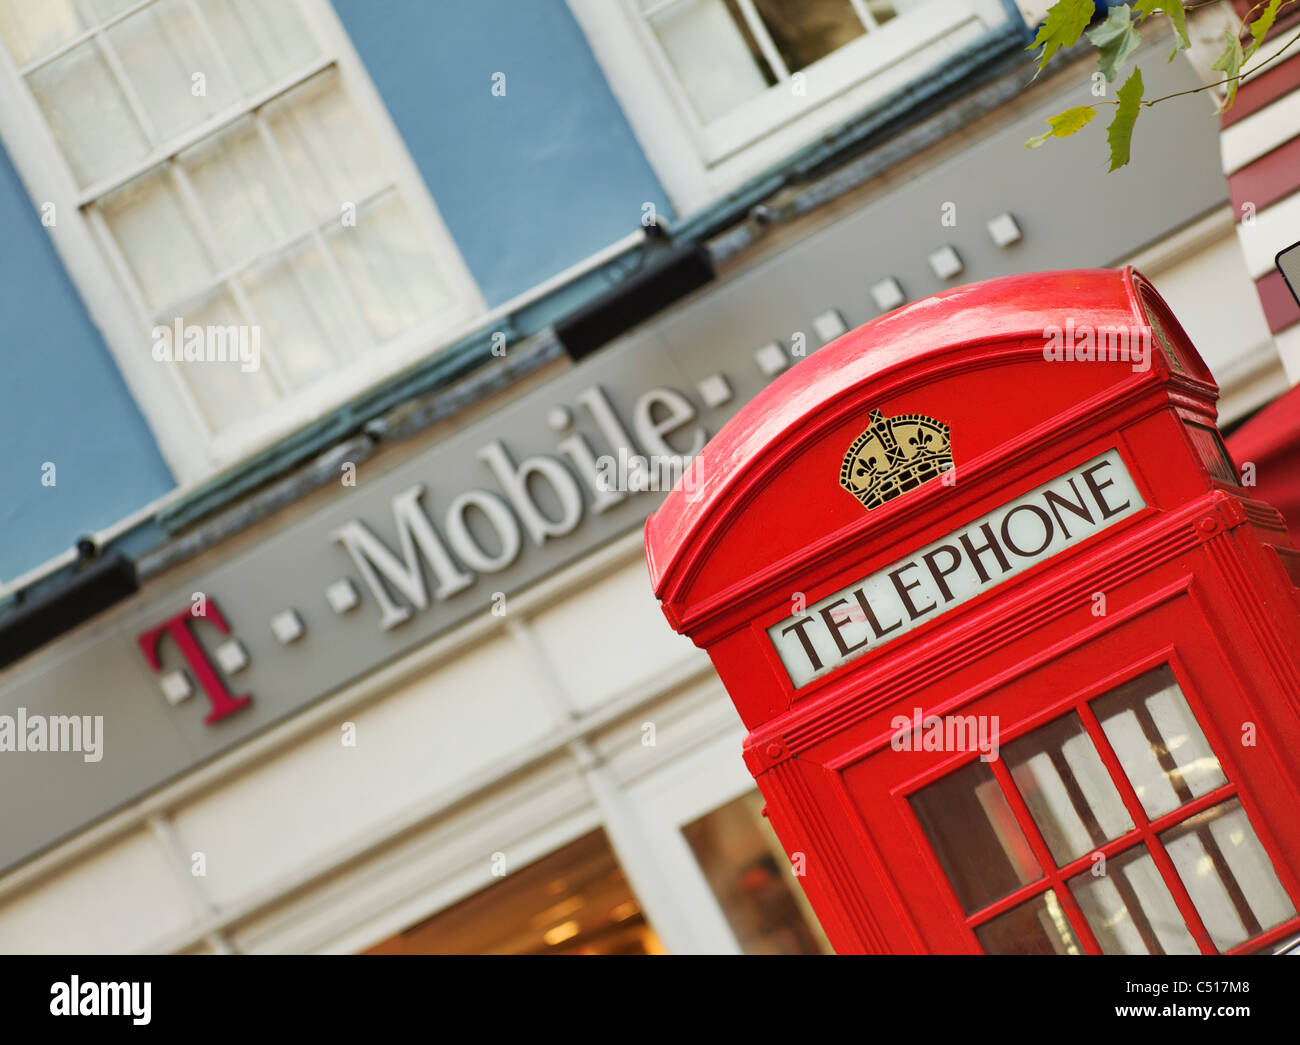 T-Mobile telephone box - Stock Image